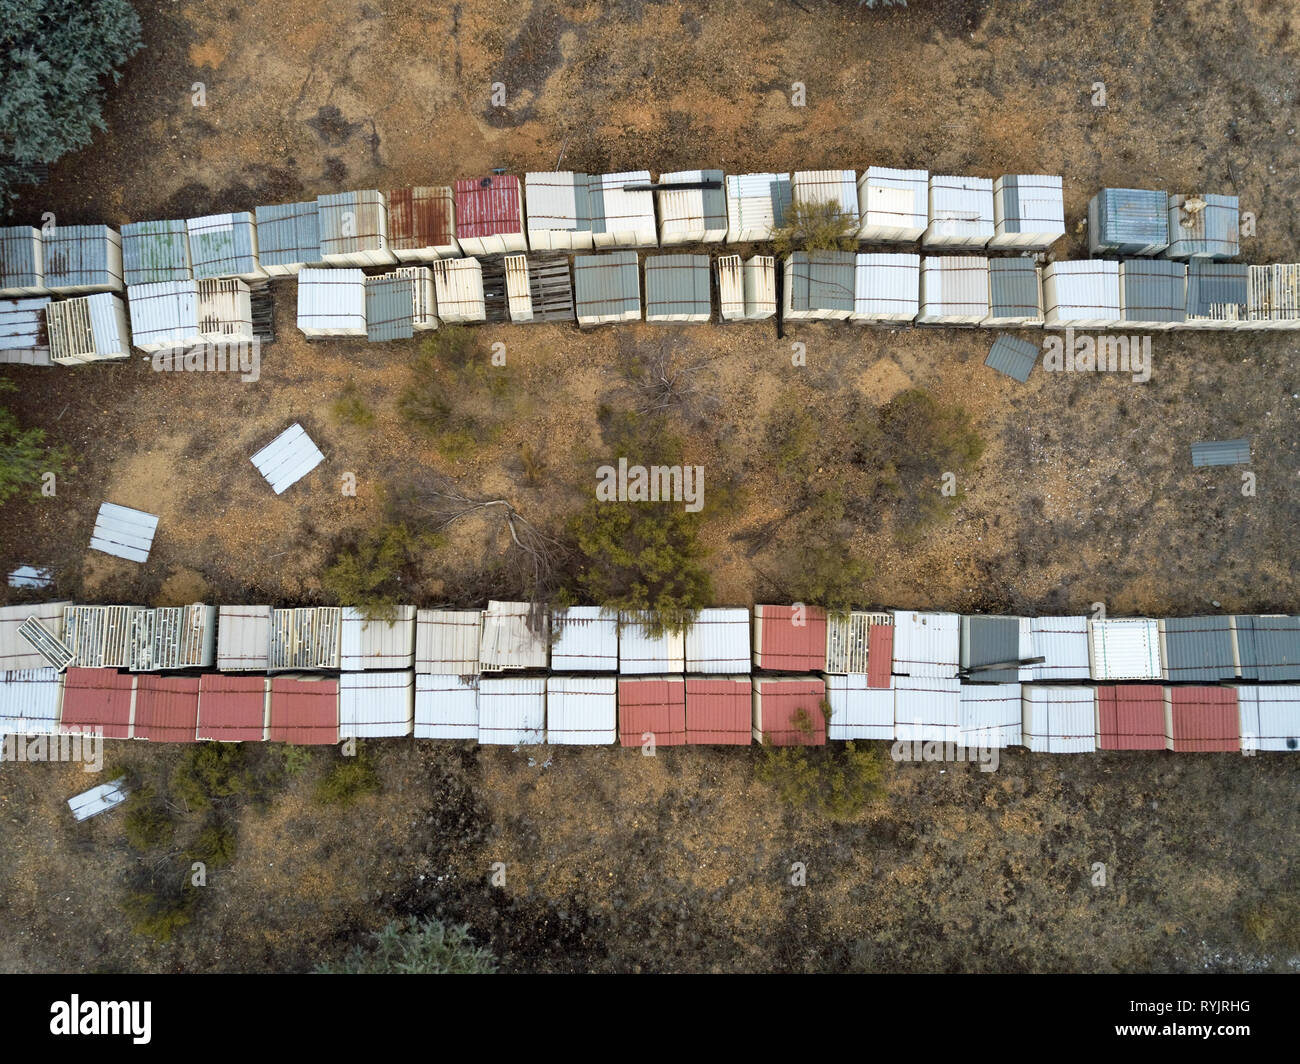 Abandoned industrial gold mine environment and historic mining facility captured with aerial photography in Victoria, Australia. - Stock Image